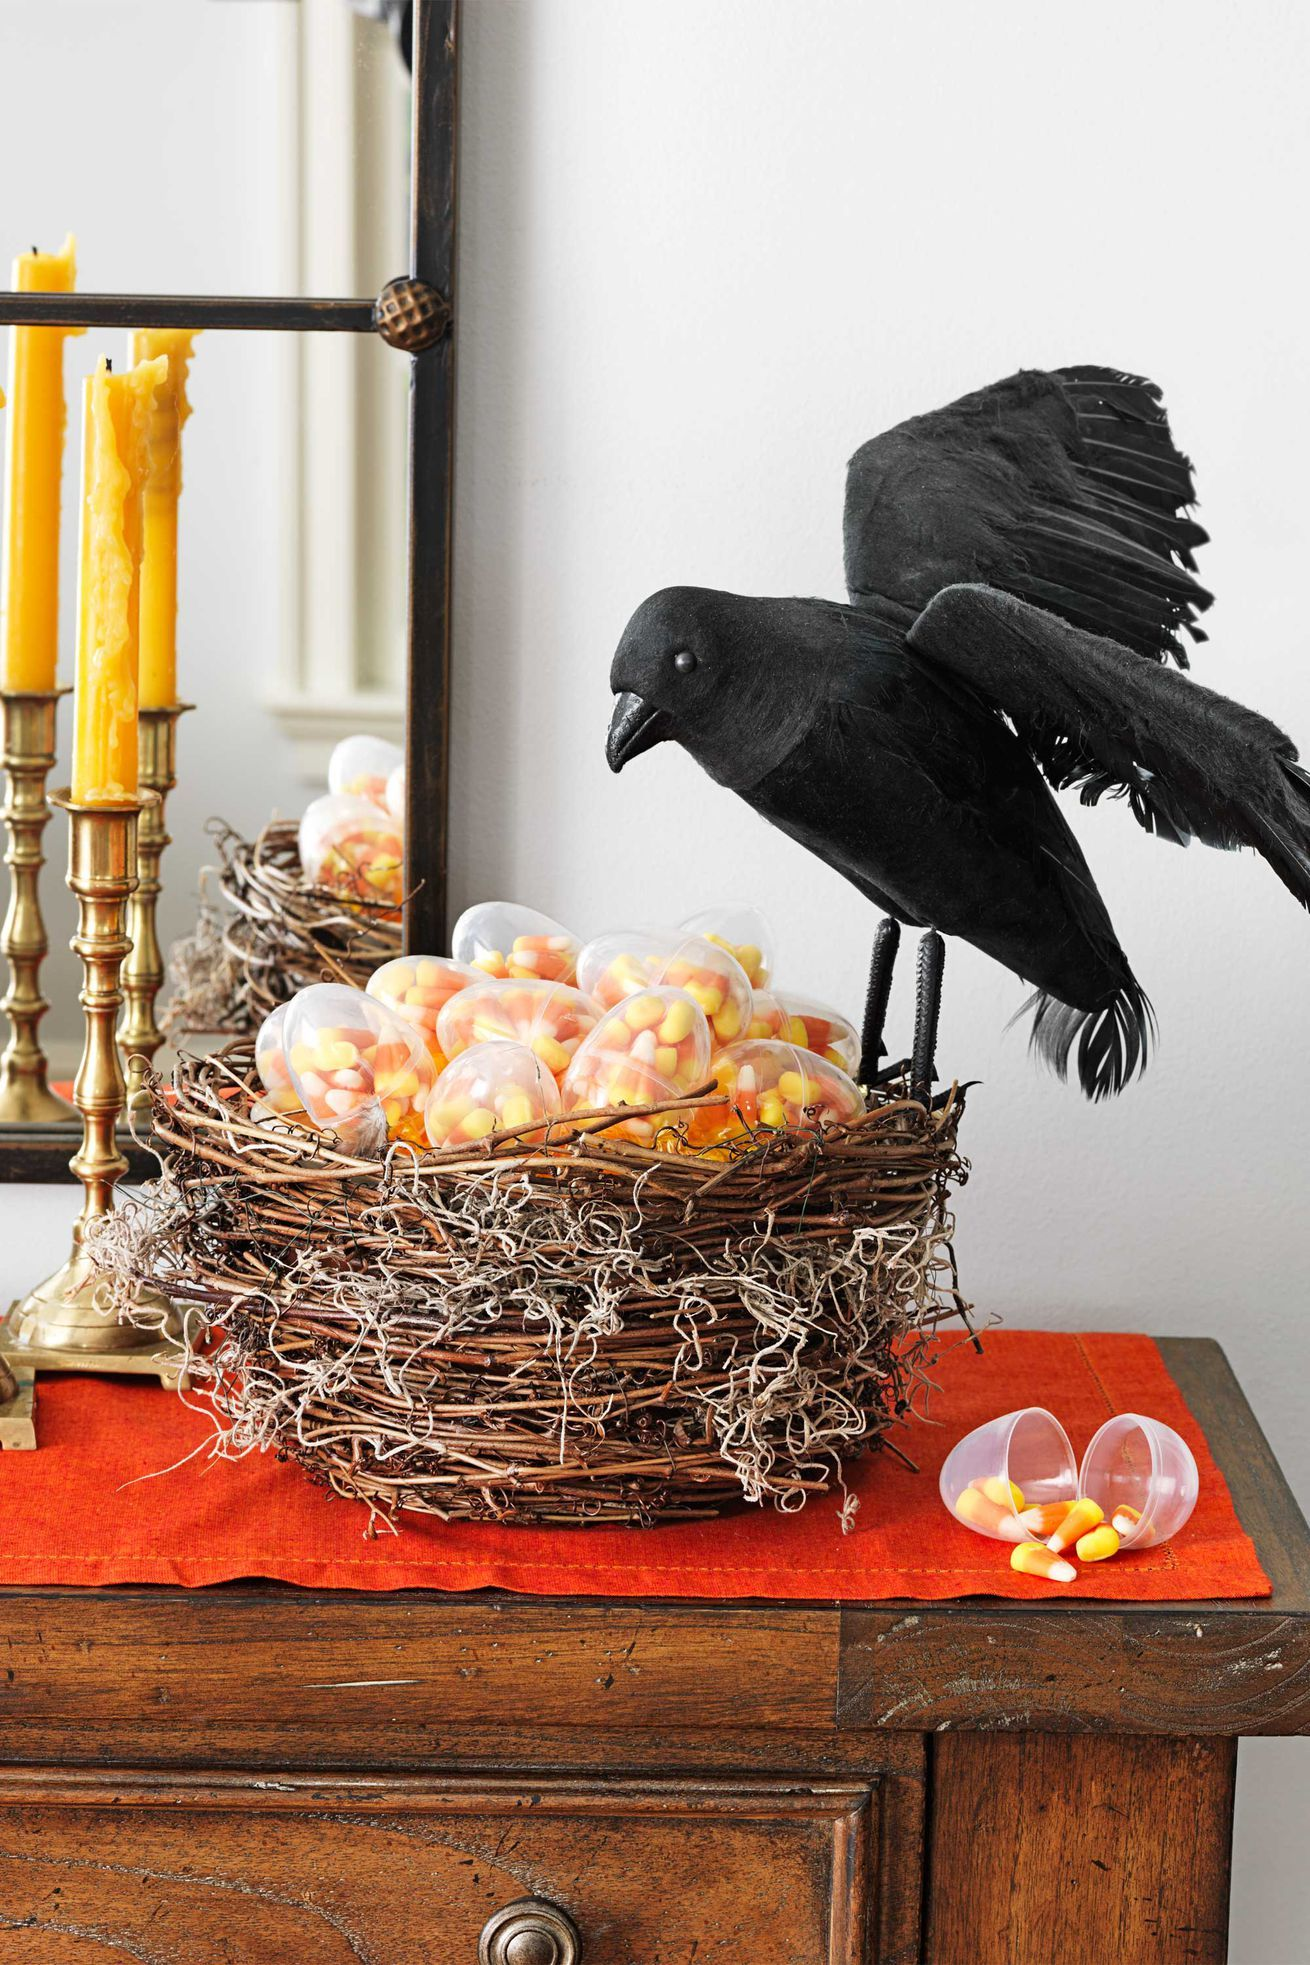 40 Spooky Halloween Decorations for the Best Holiday Ever - Do It Yourself Halloween Decorations